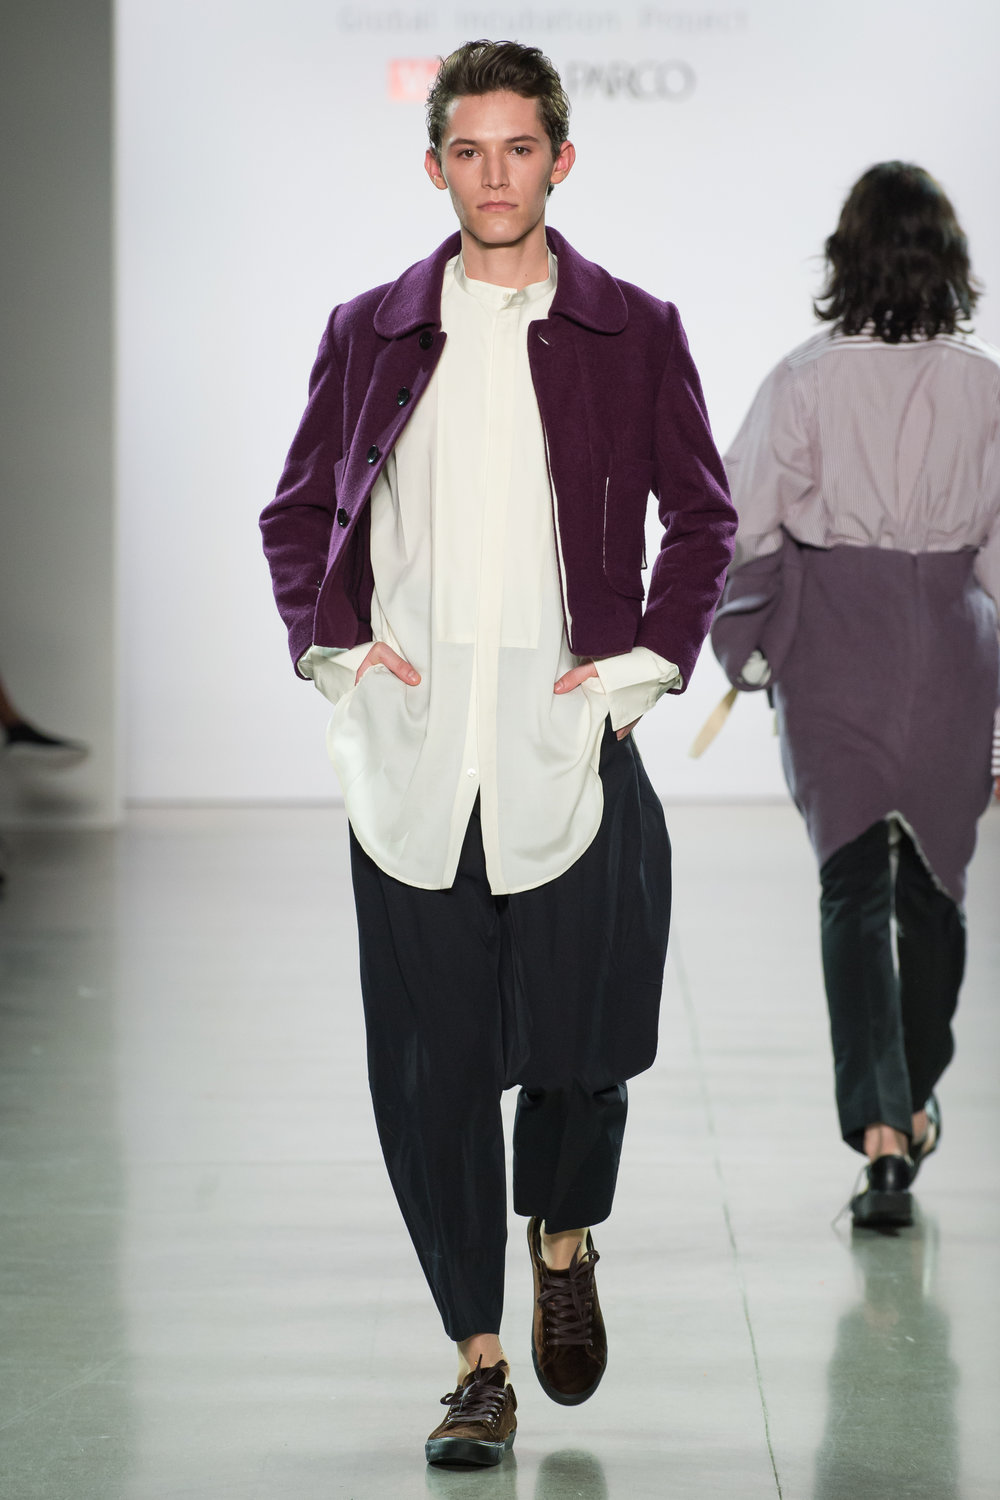 Look 7  -Cropped jacket in aubergine wool boucle  -Dress shirt in ivory double face wool satin  -Big pants in black poly blend technical chambray  -Stocking in nude with white crystals